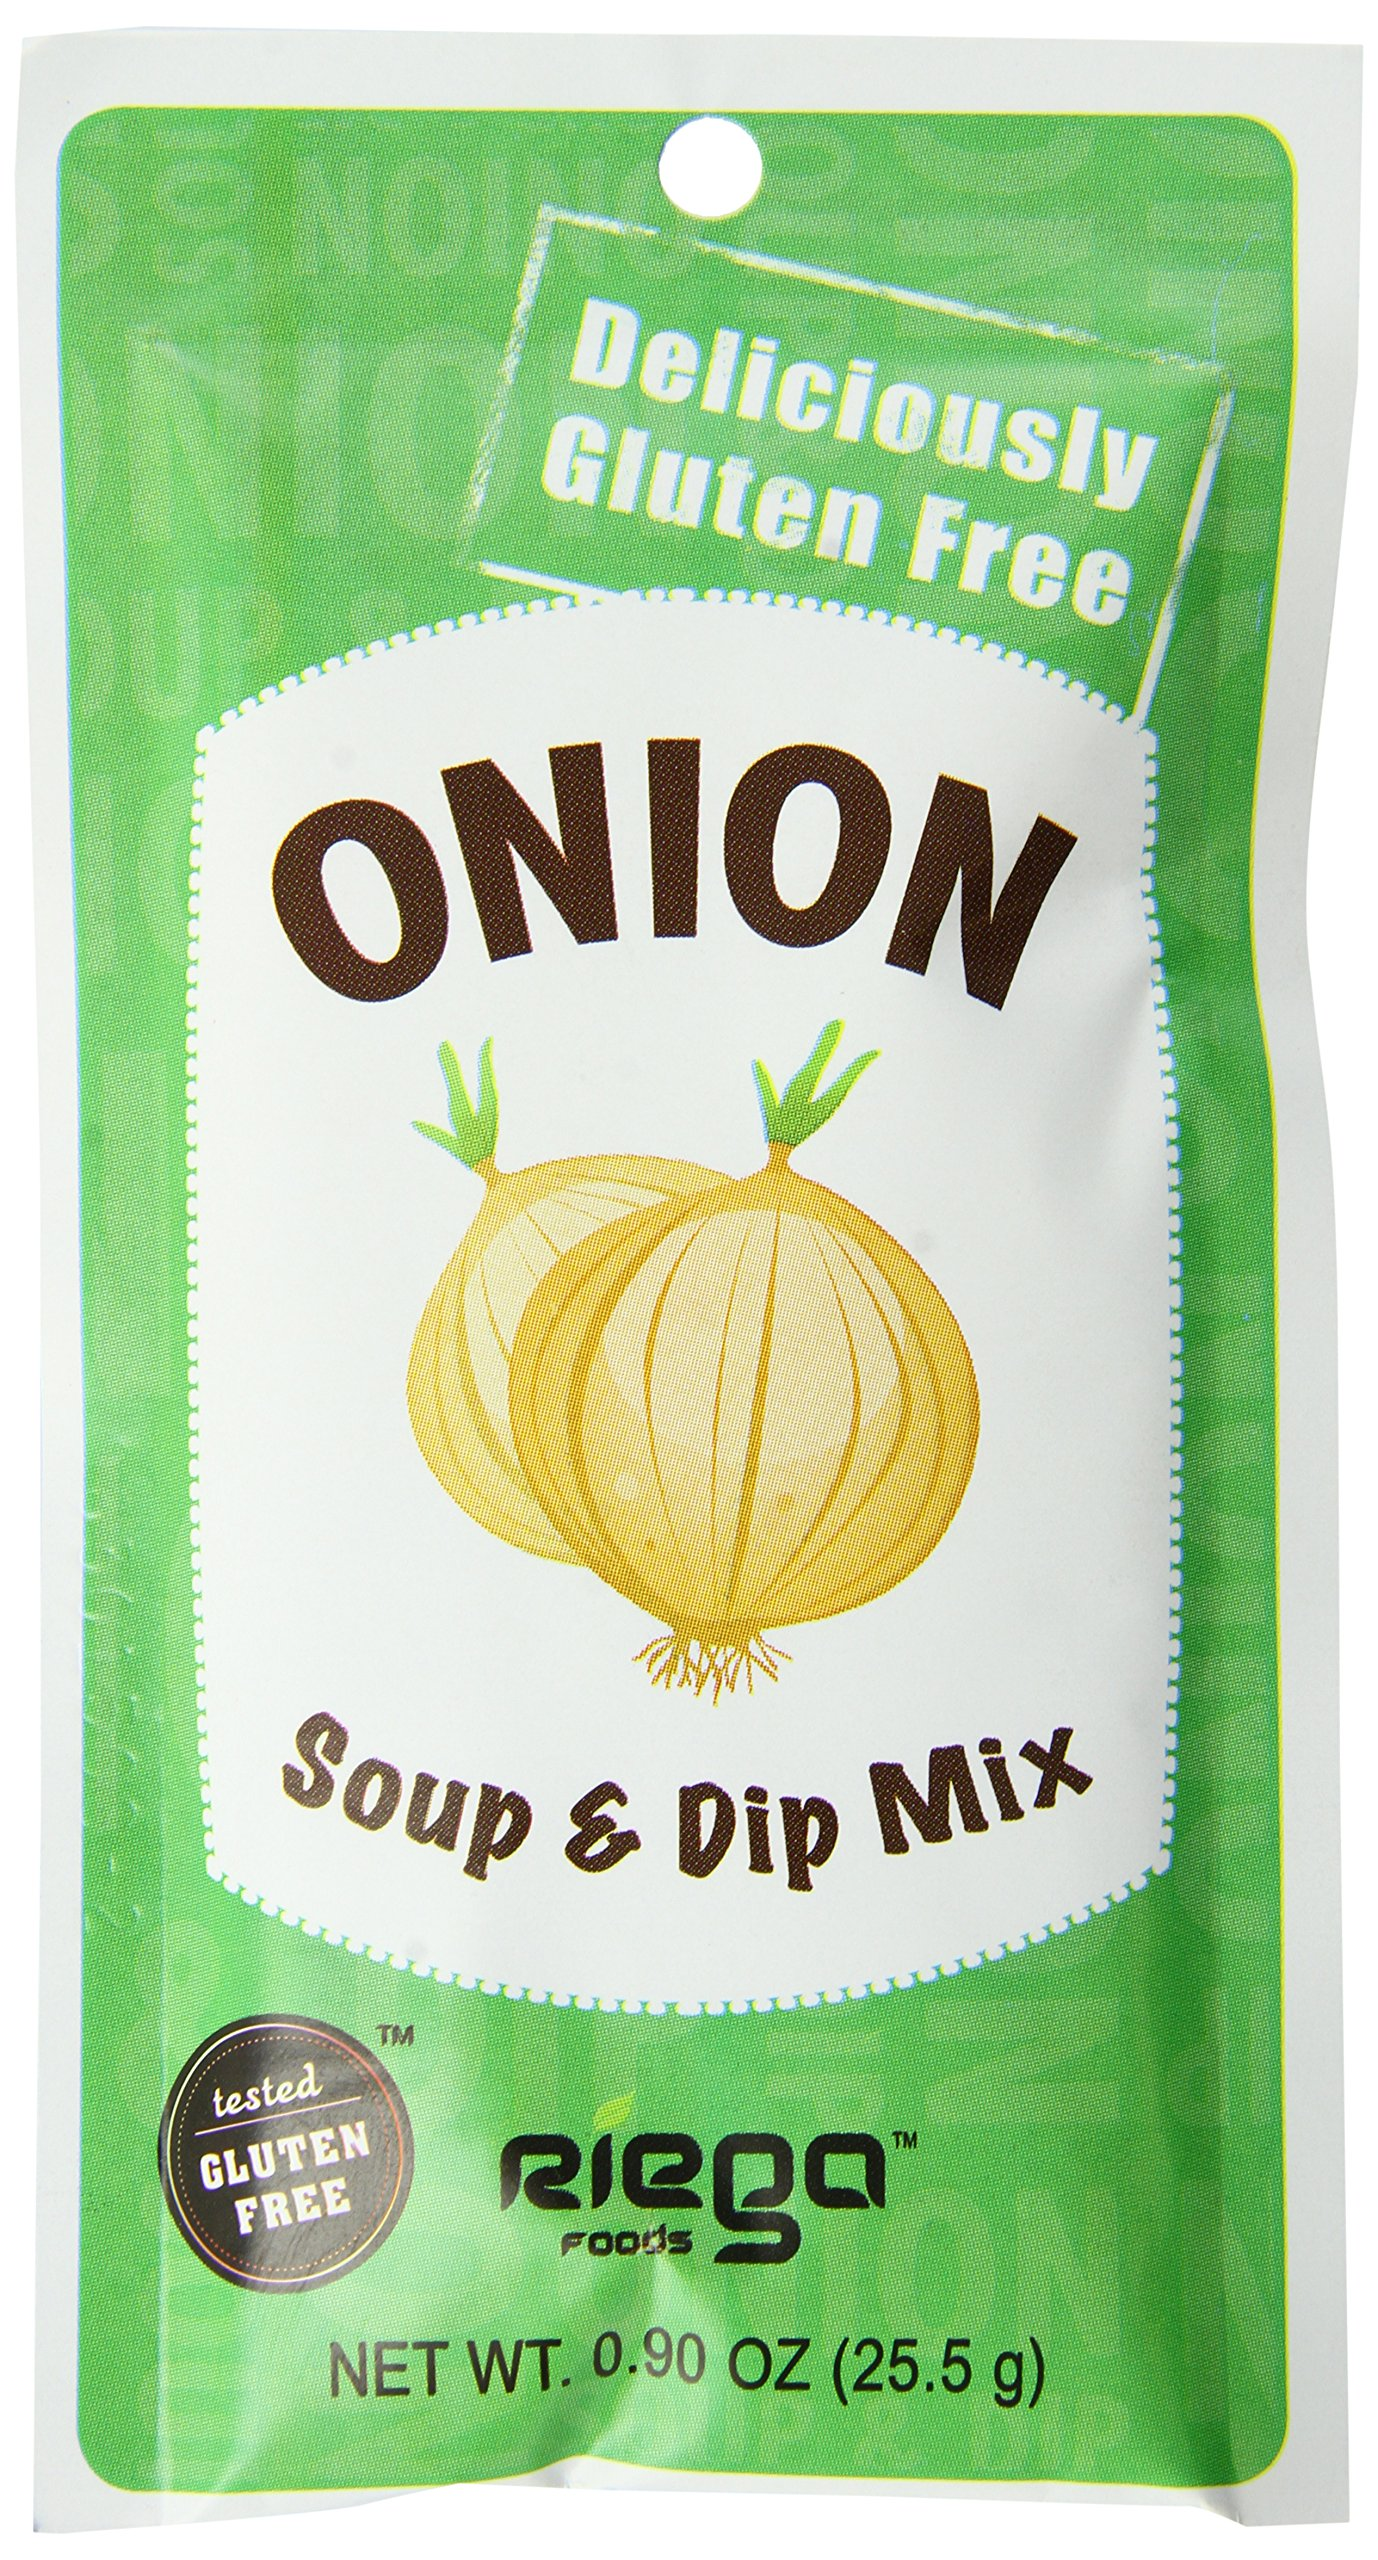 Riega Gluten Free Onion Soup and Dip Mix, 0.90 Ounce (Pack of 8) by Riega